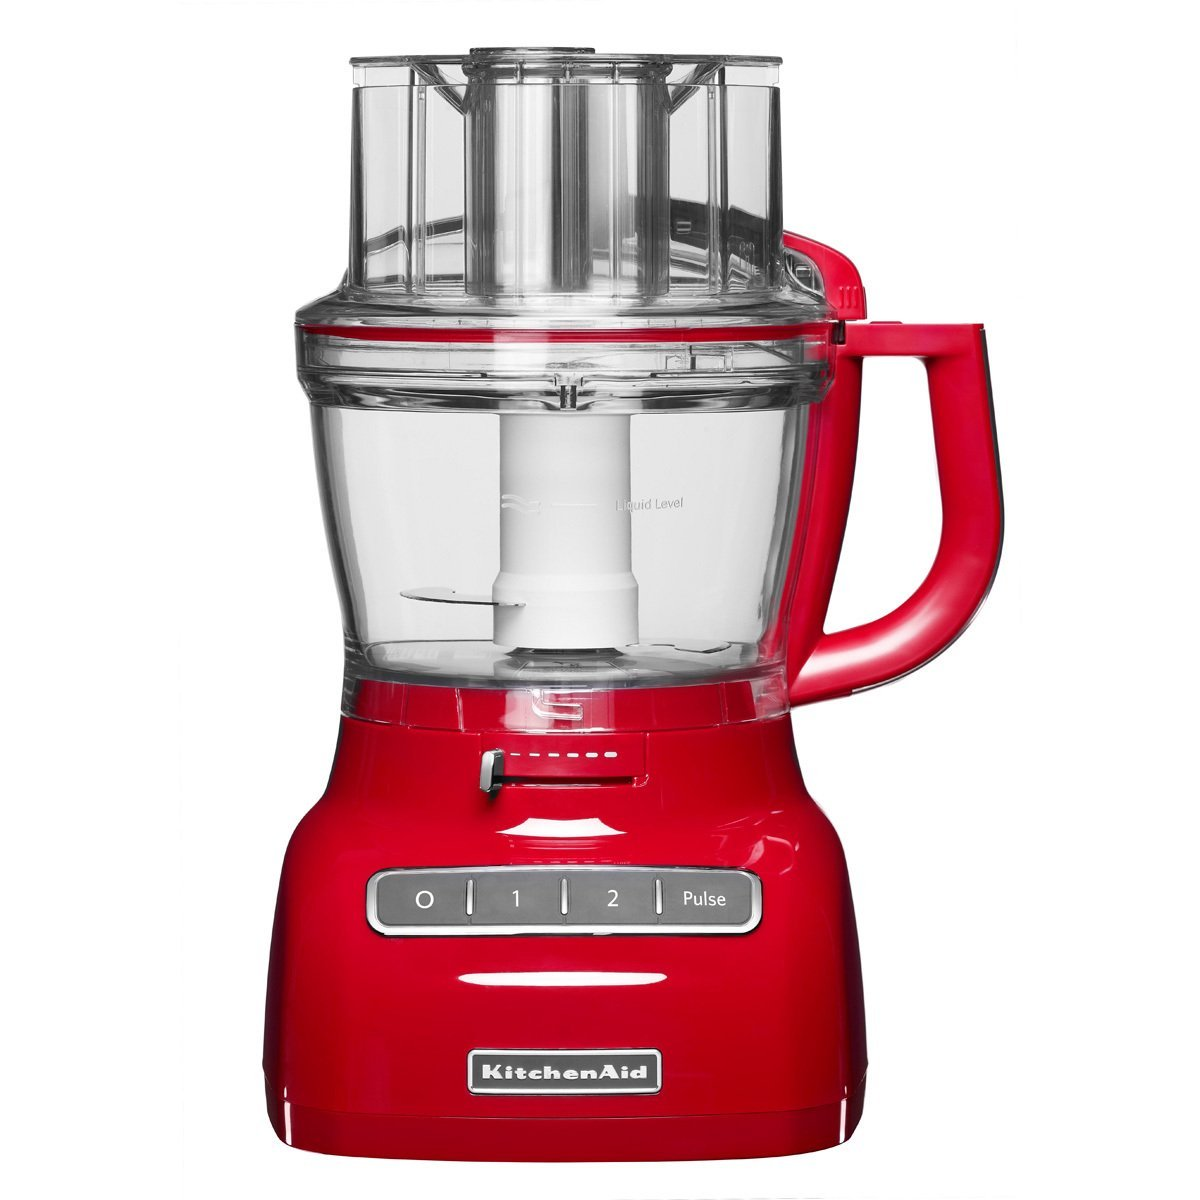 kitchenaid food processor 5kfp1335 recensione e opinioni